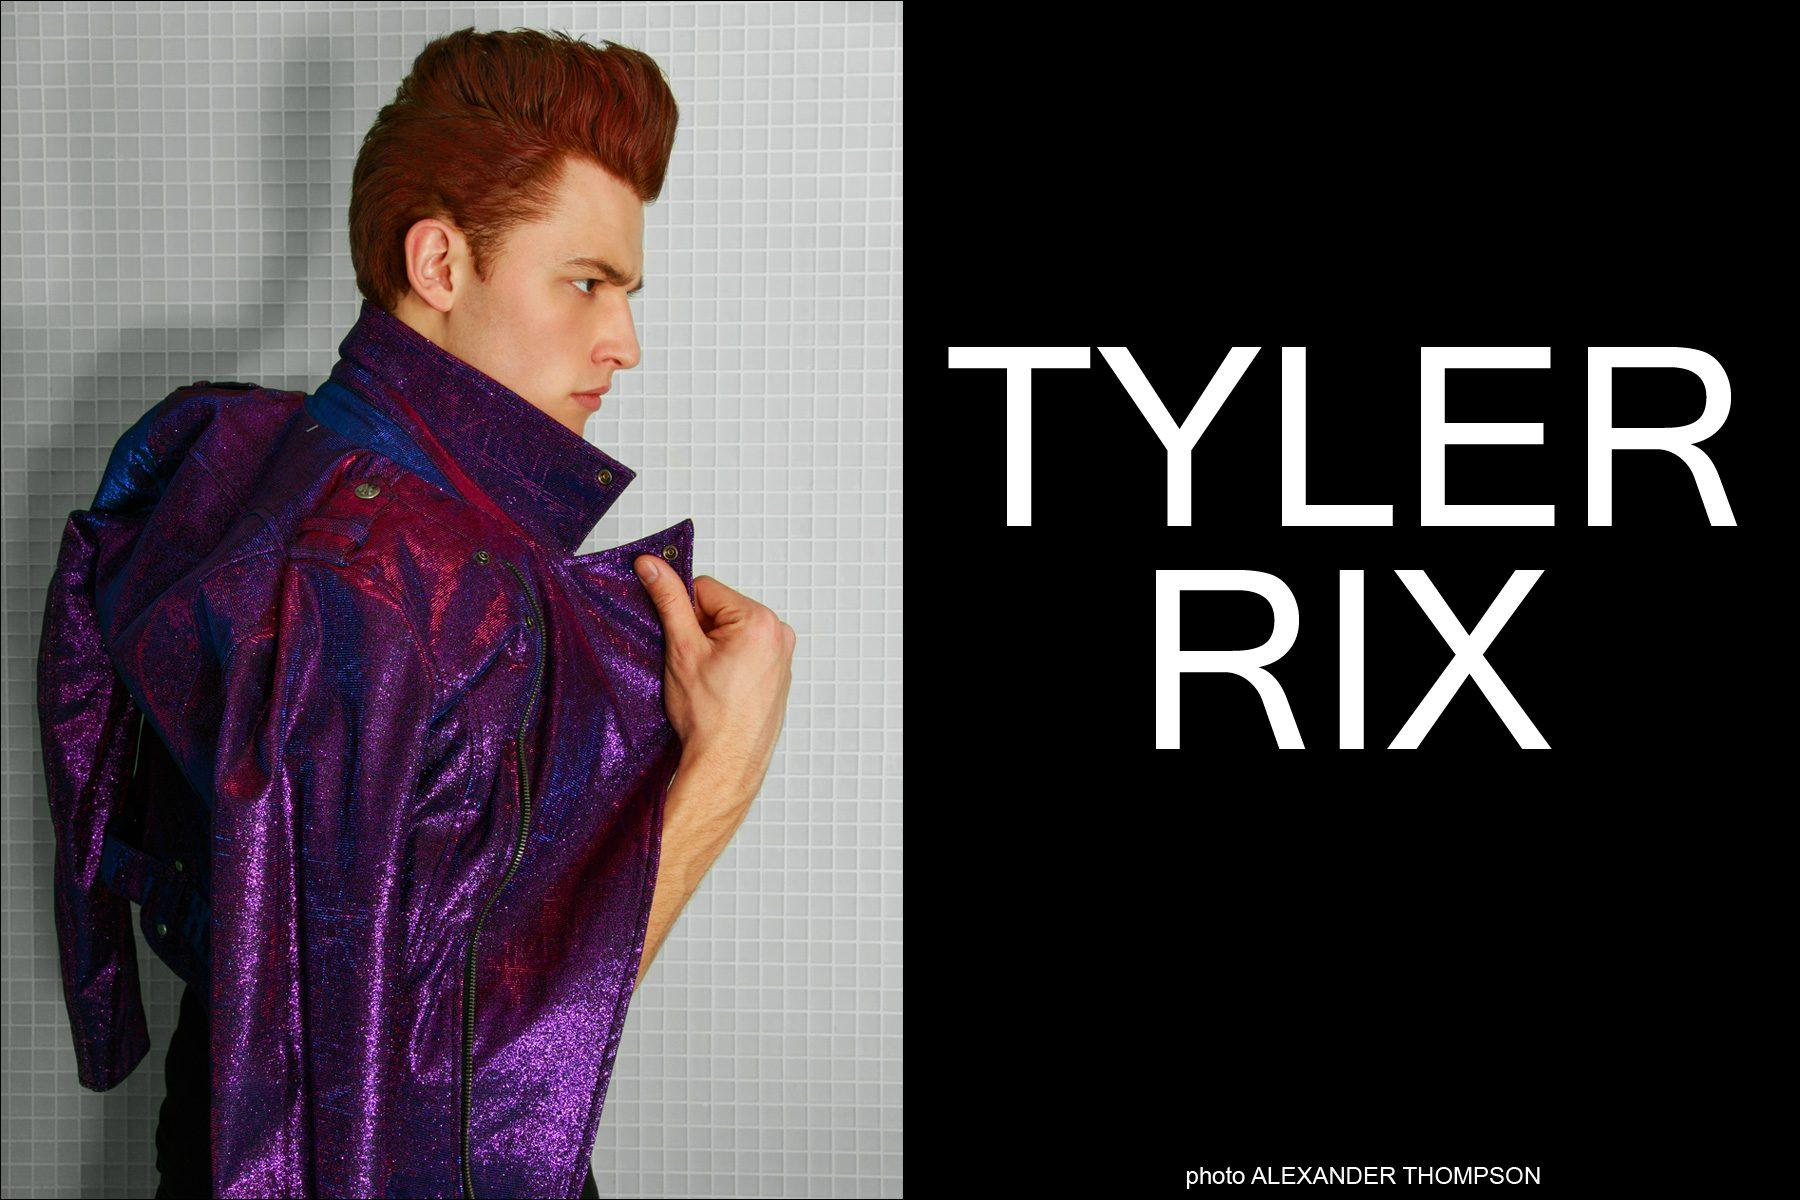 Model Tyler Rix from the Fusion Agency in NYC, wearing Tripp NYC for Ponyboy magazine, featuring men's style, fashion, rockabilly, 50's. Photography by Alexander Thompson.